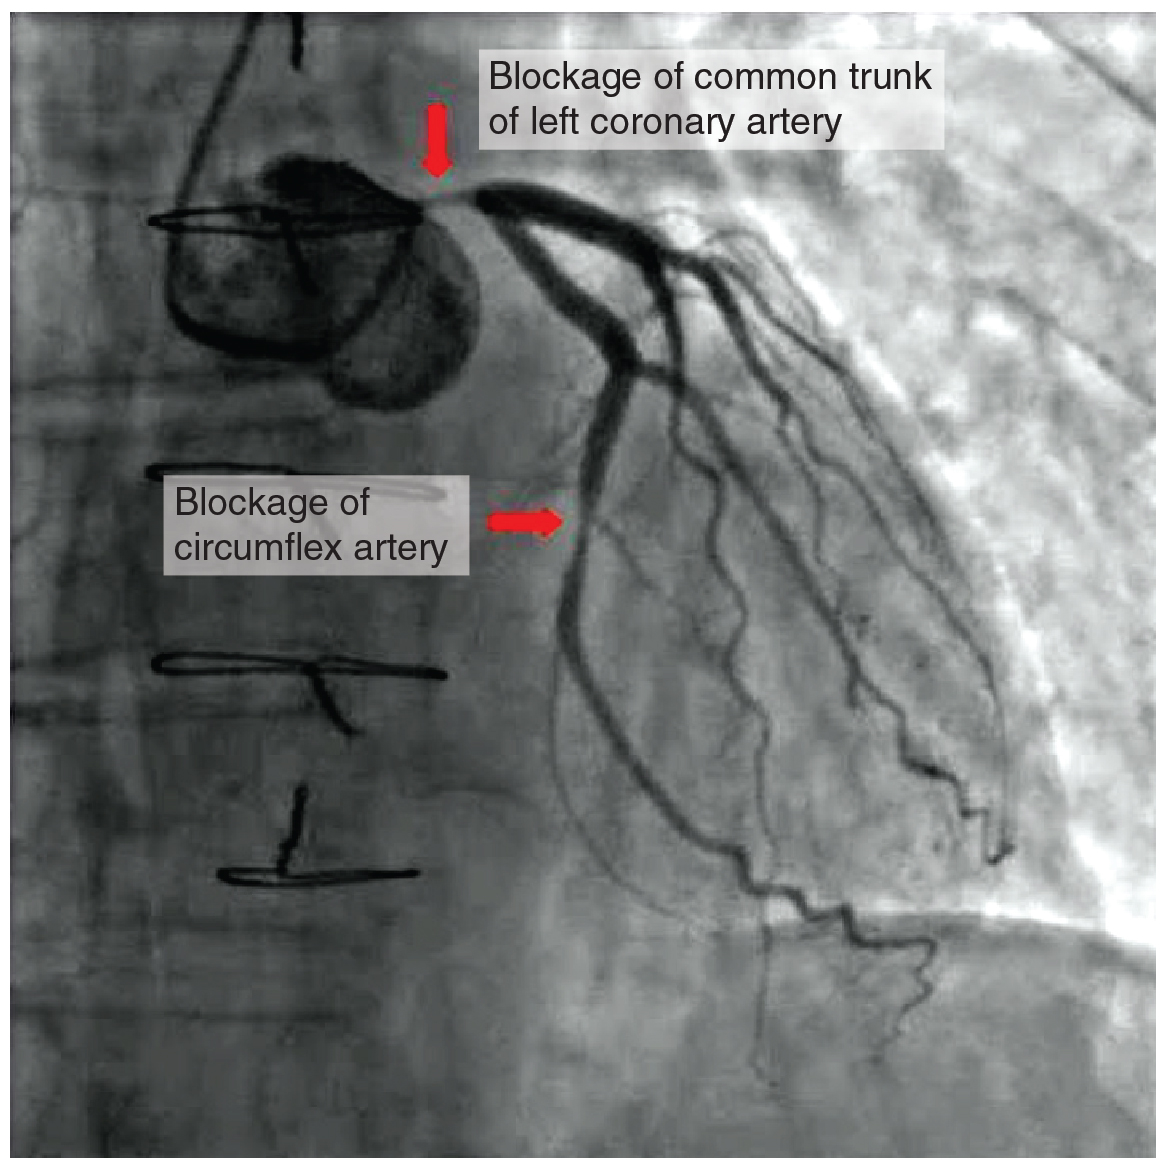 This photo shows a blockage in the coronary artery and in the circumflex artery.